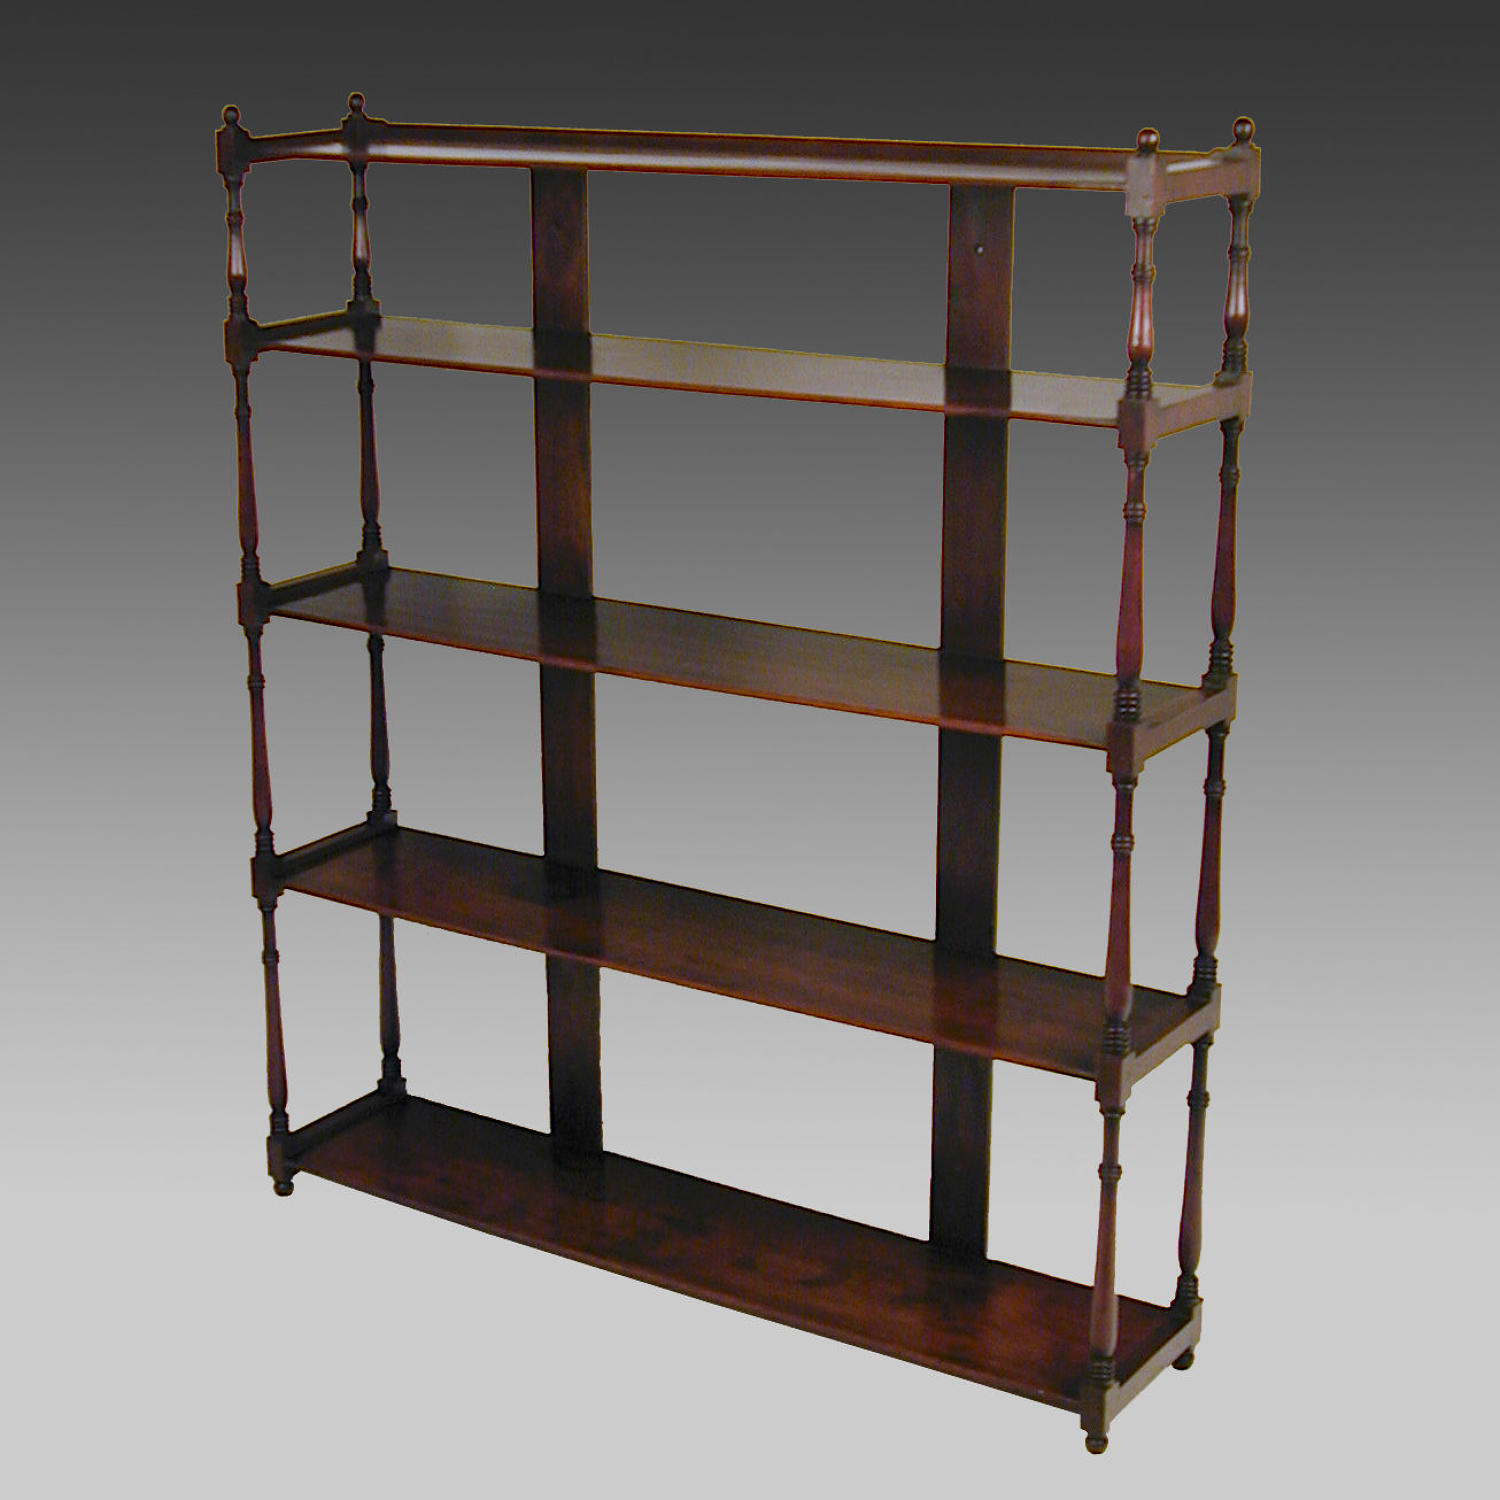 Georgian mahogany hanging or standing shelves